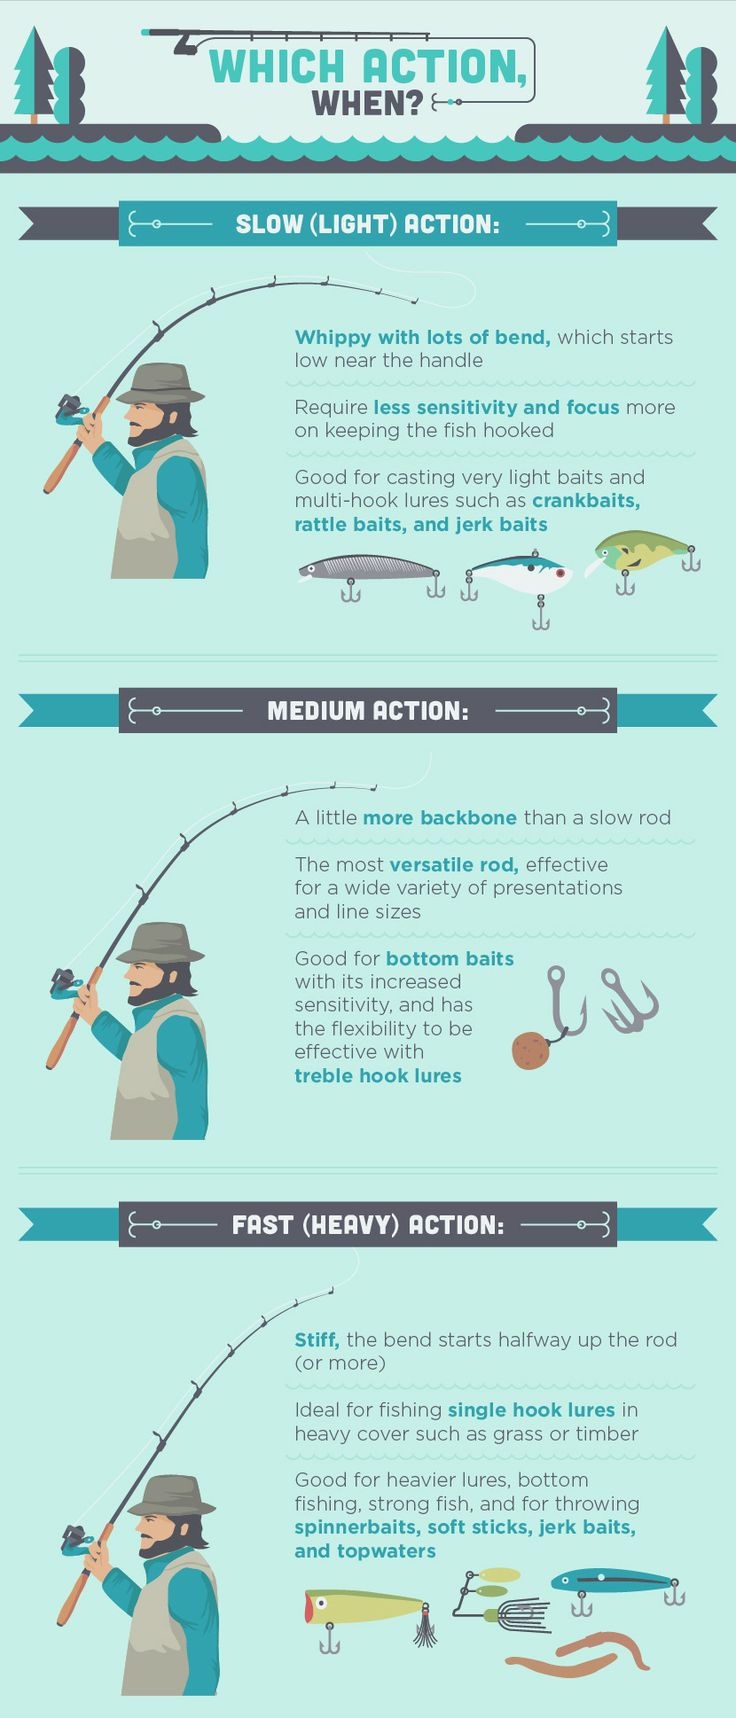 Rod Selection is key! Let this image get you started and then visit the shop to get all set up! www.vailvalleyanglers.com